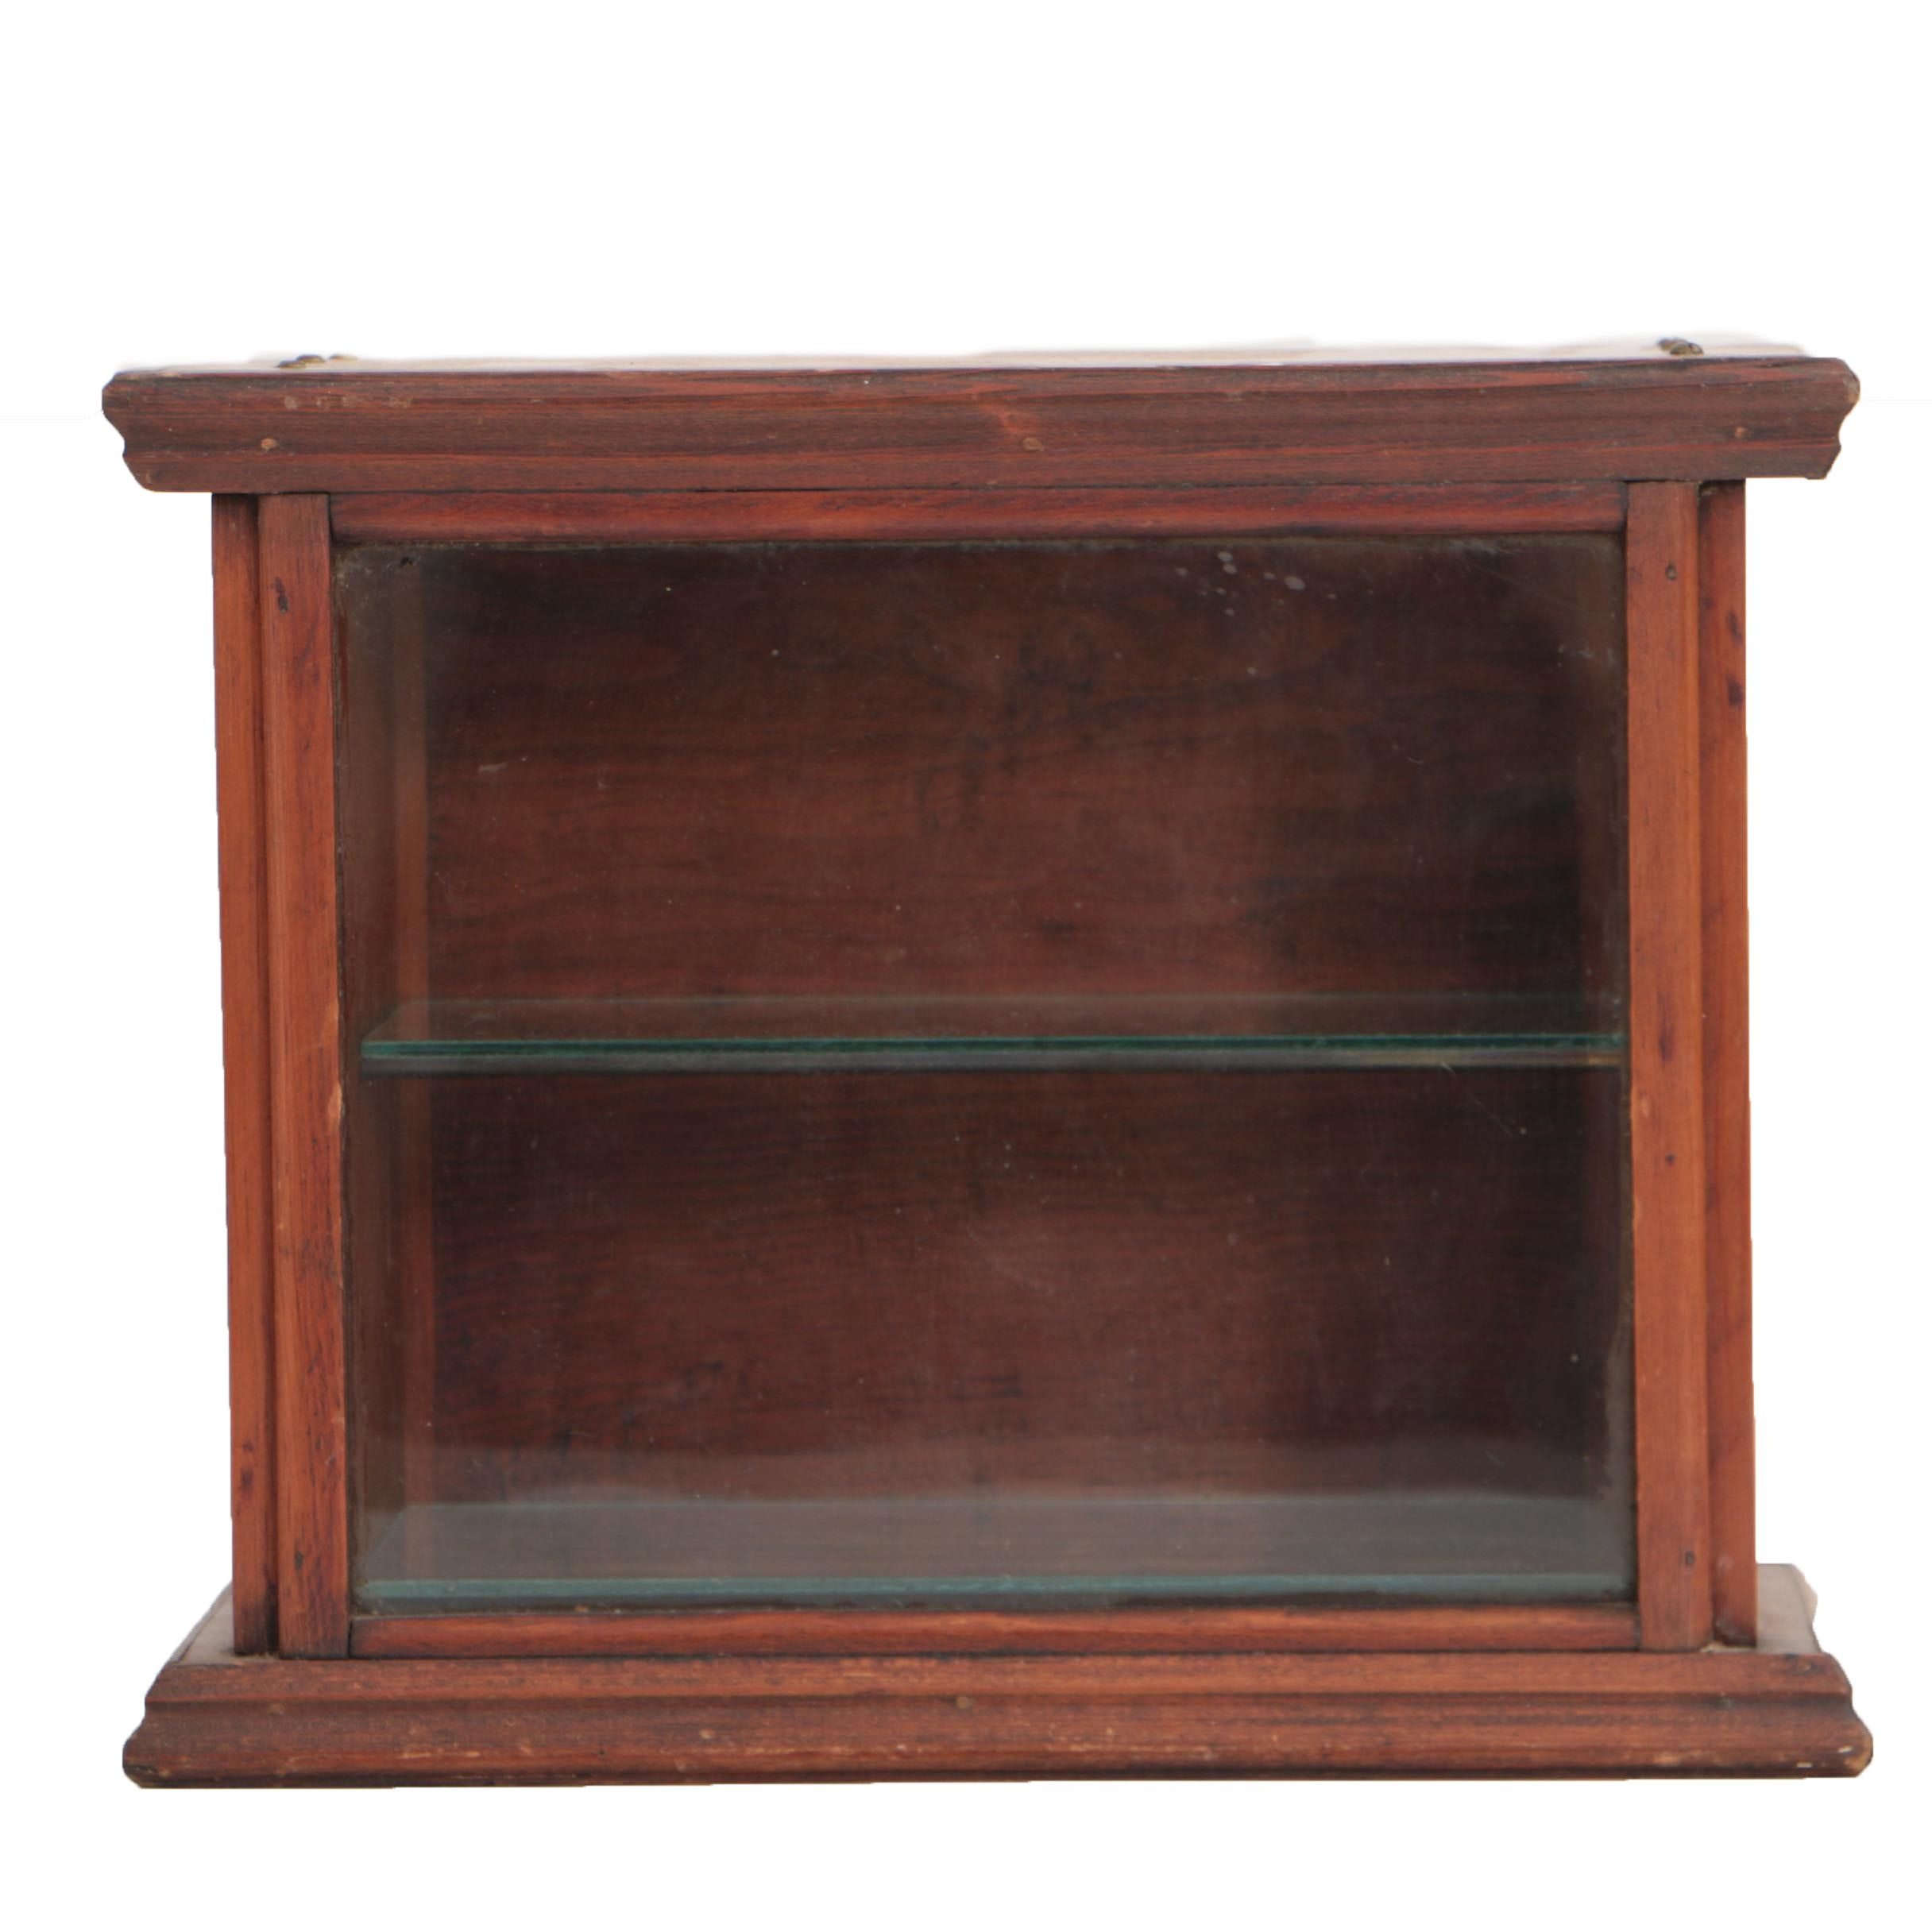 Vintage Pine Countertop Display Case